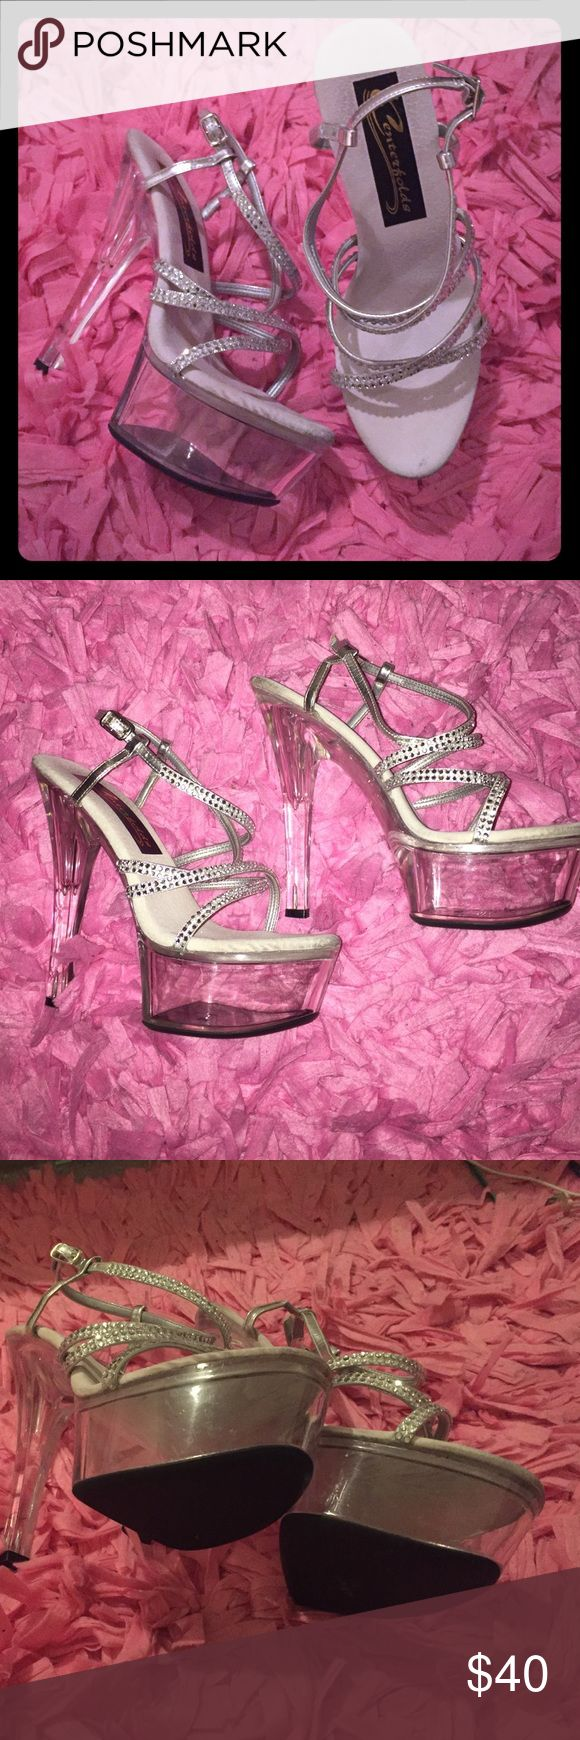 Centerfolds Stripper Heels 7 Stripper heels by Centerfolds. Size 7. Great condition. No rhinestones missing. Clear platform and heels. Centerfolds Shoes Platforms